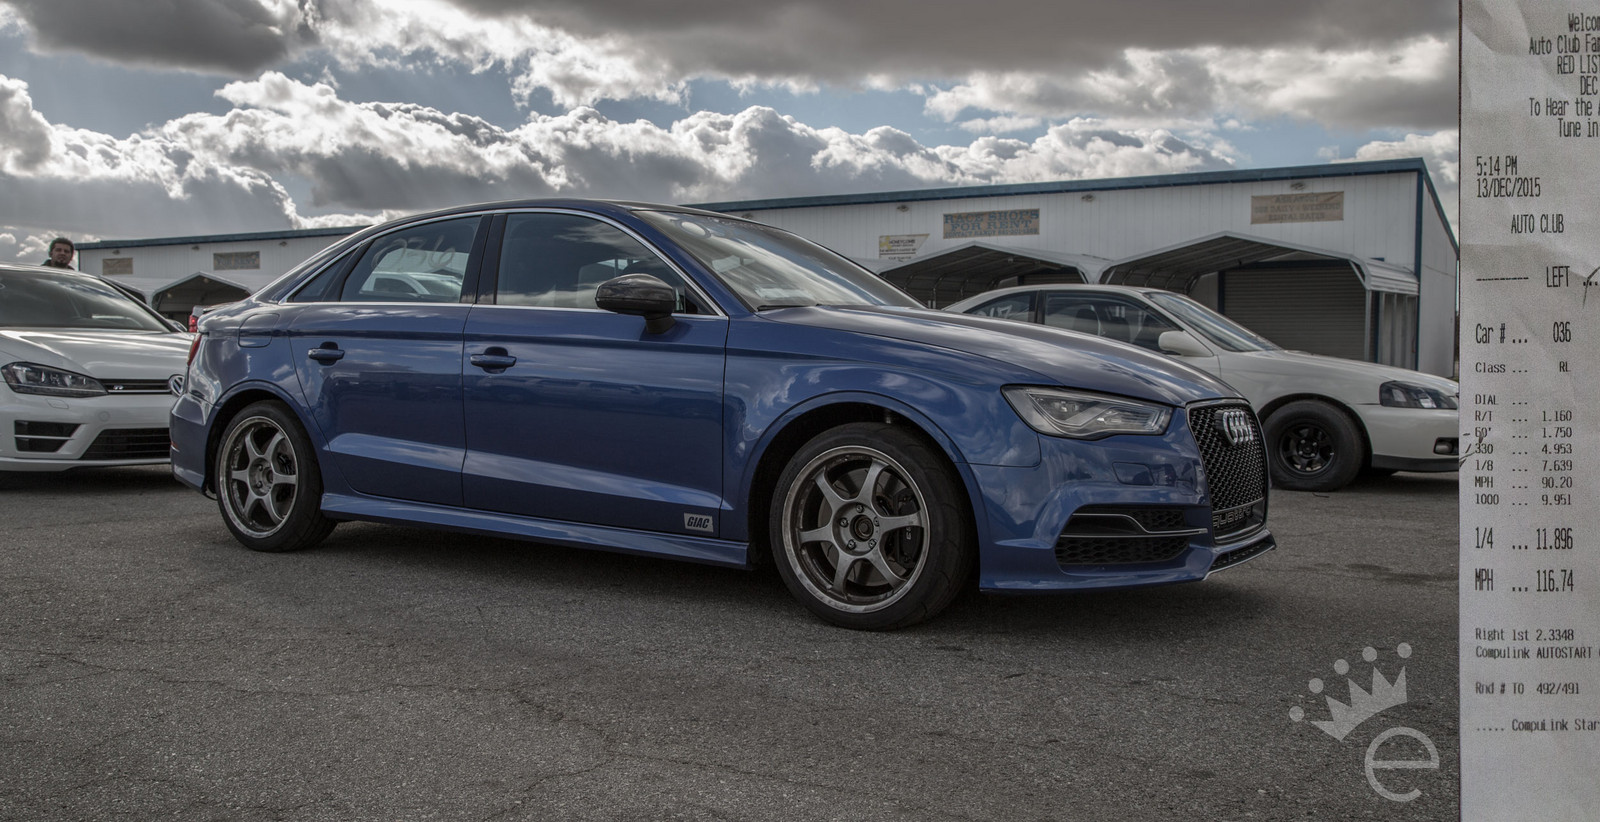 2015 Audi S3 Emmanuele Design Project S3 l GIAC Stage 2